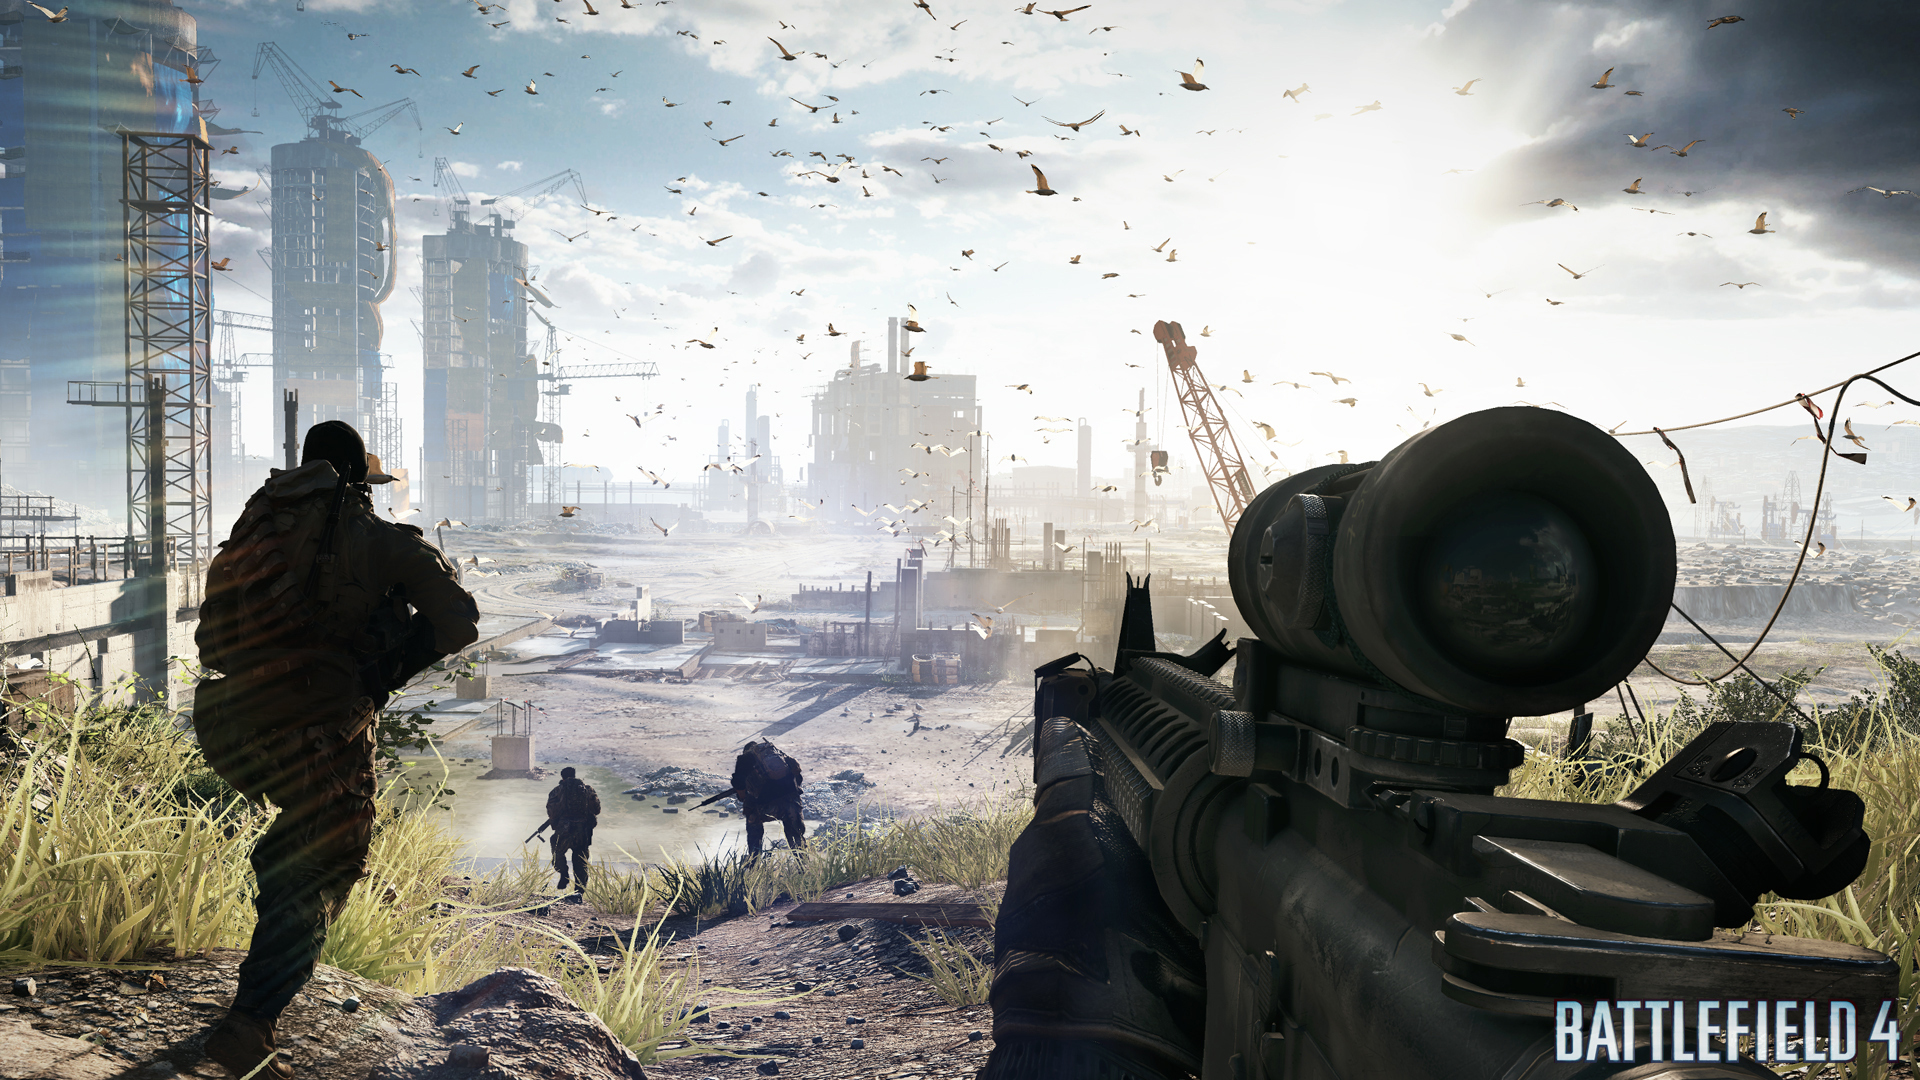 Dice Reveals Battlefield 4 Gameplay Trailer Released Powered By